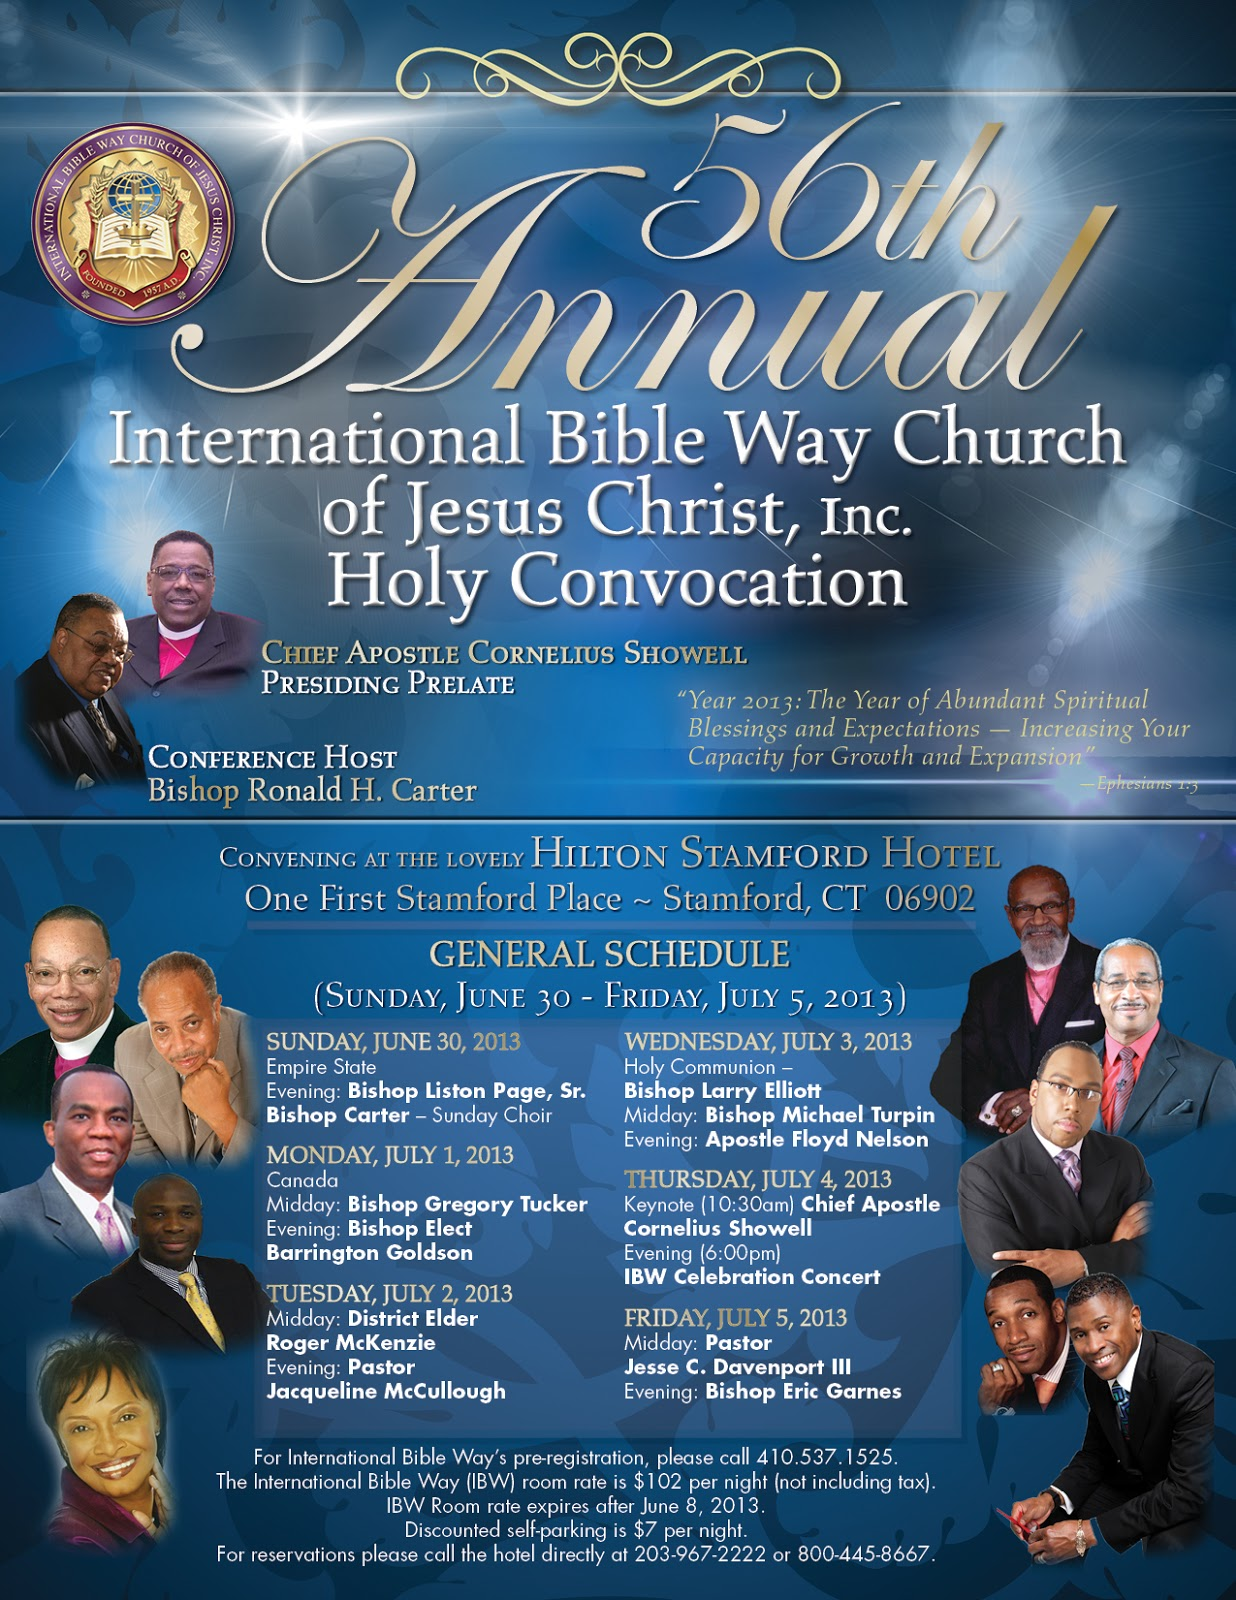 Pentecostal Perspective: International Bible Way Church of Jesus Christ's 56th Holy Convocation